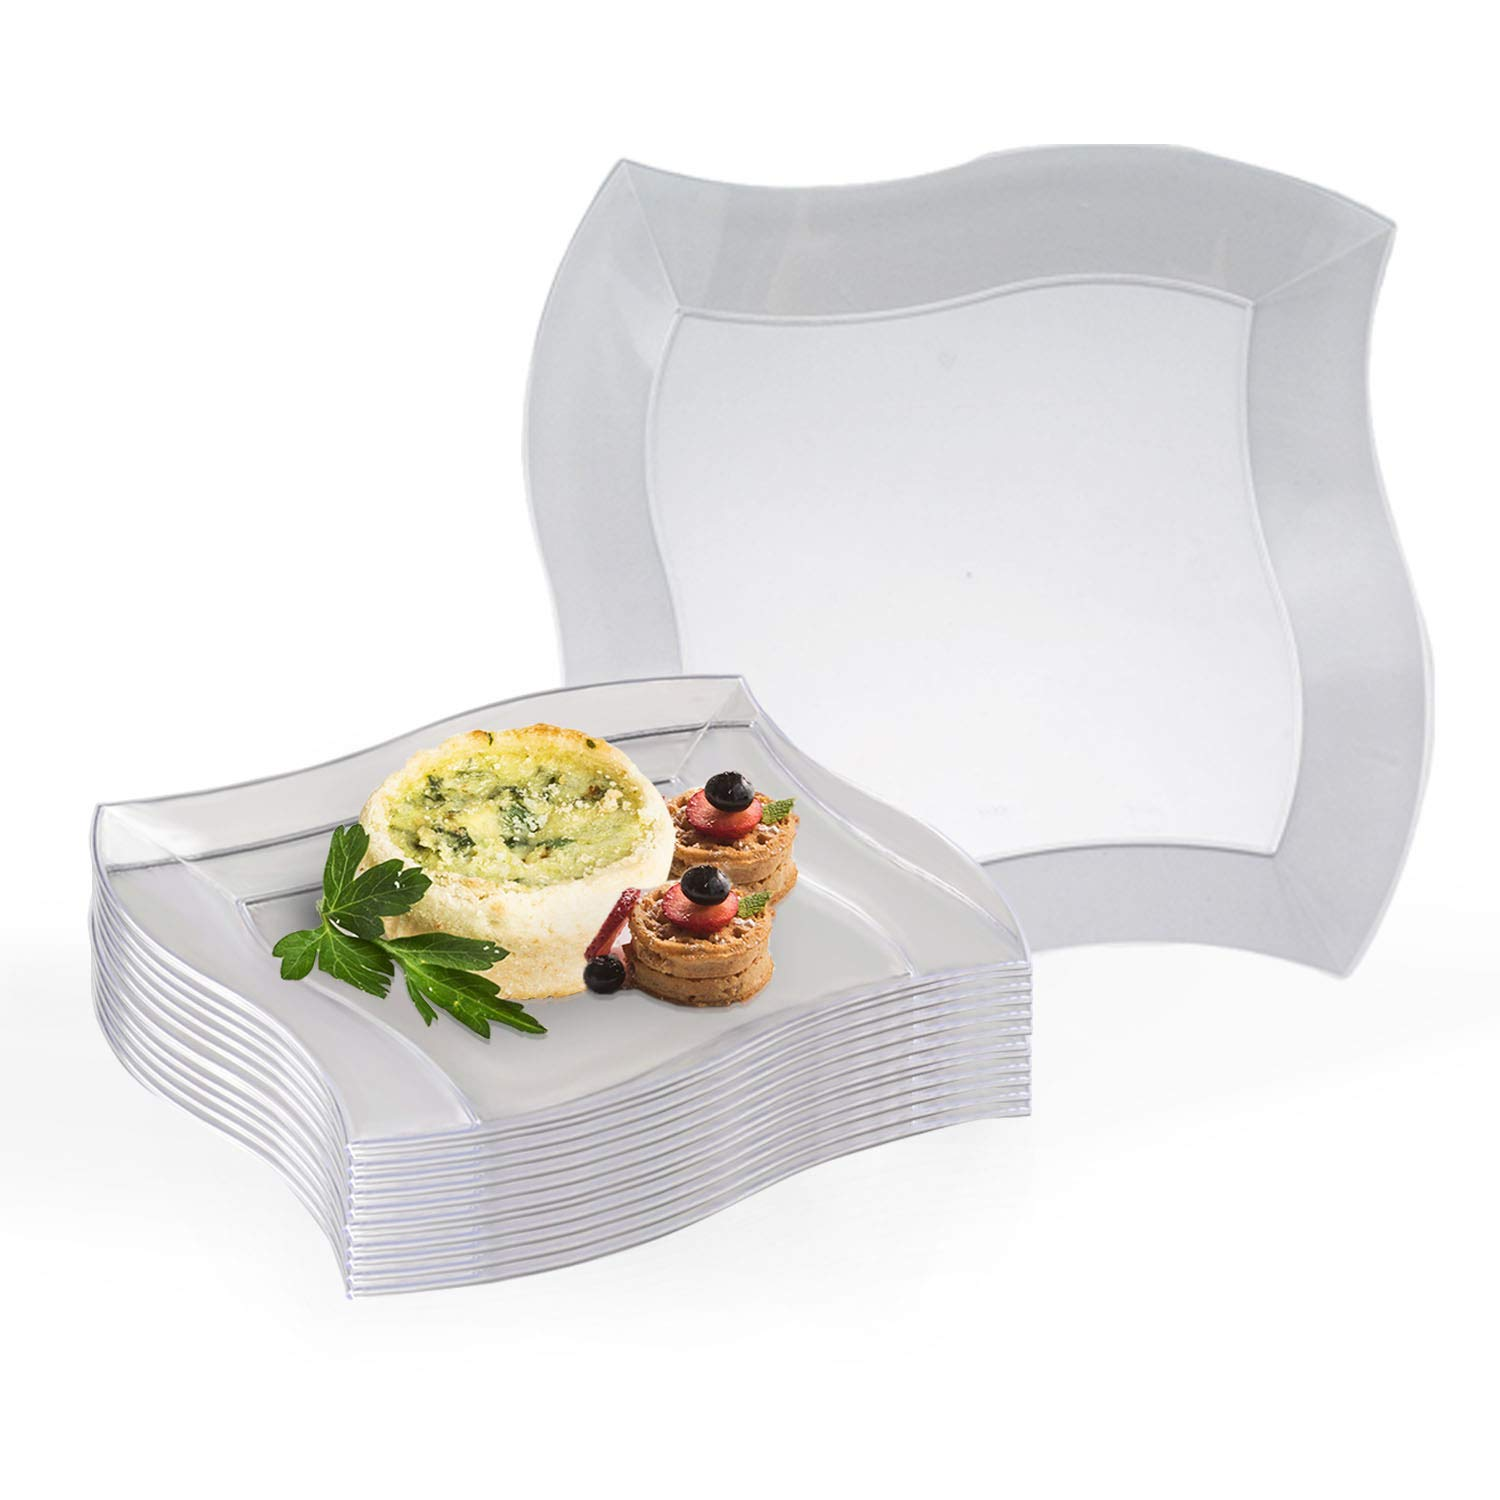 """Elegant Disposable Plastic Dessert Plates 120 Pcs - 7"""" Heavy Duty Wave Clear Salad Plates - Reusable Appetizer Cake Plates - Bulk Party Supplies For Wedding, Easter, Birthday Parties & All Occasions"""